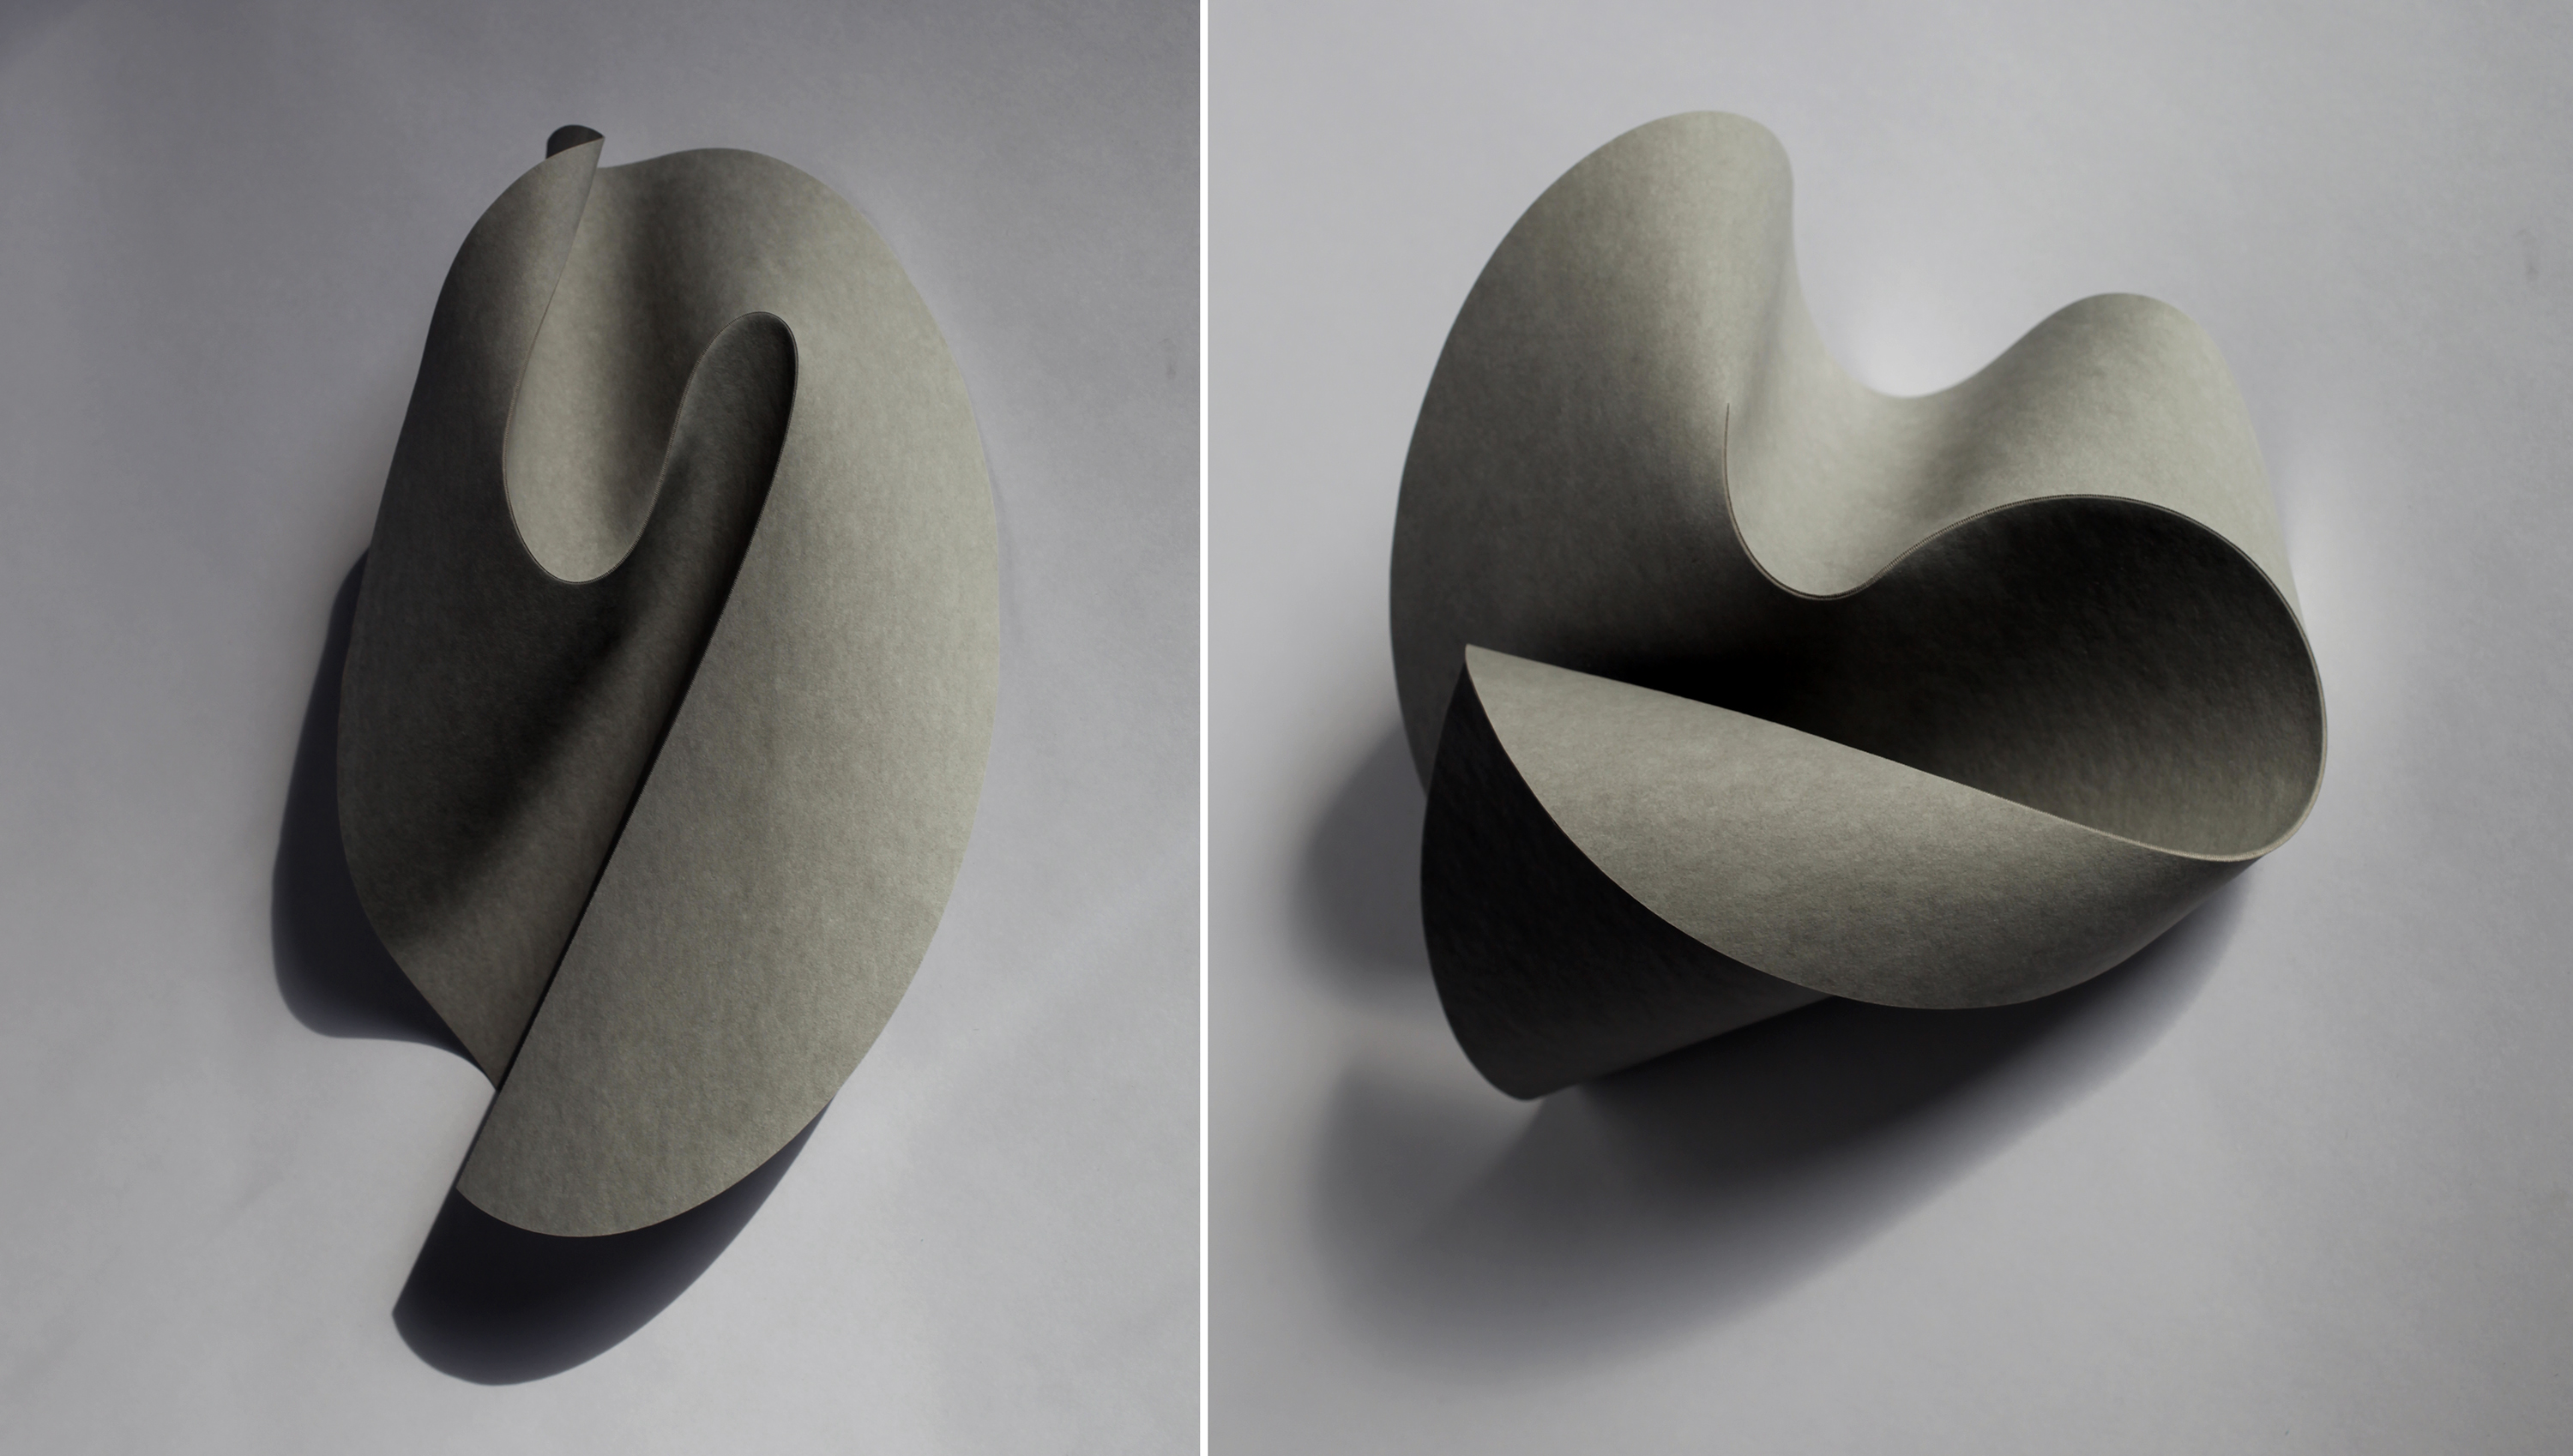 Two abstract curved sculptures